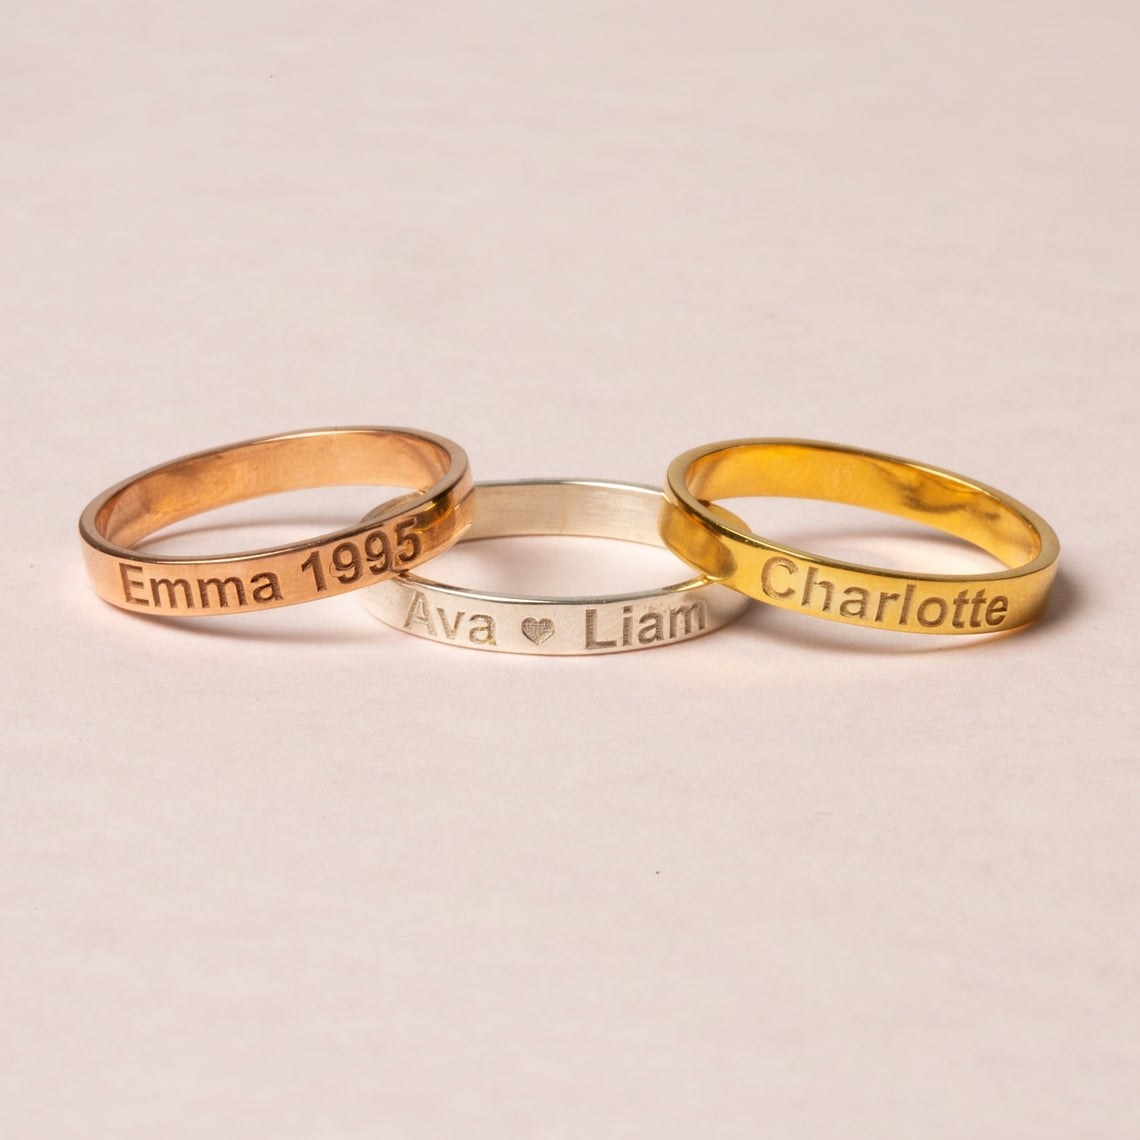 A few of the rings with different names engraved in them